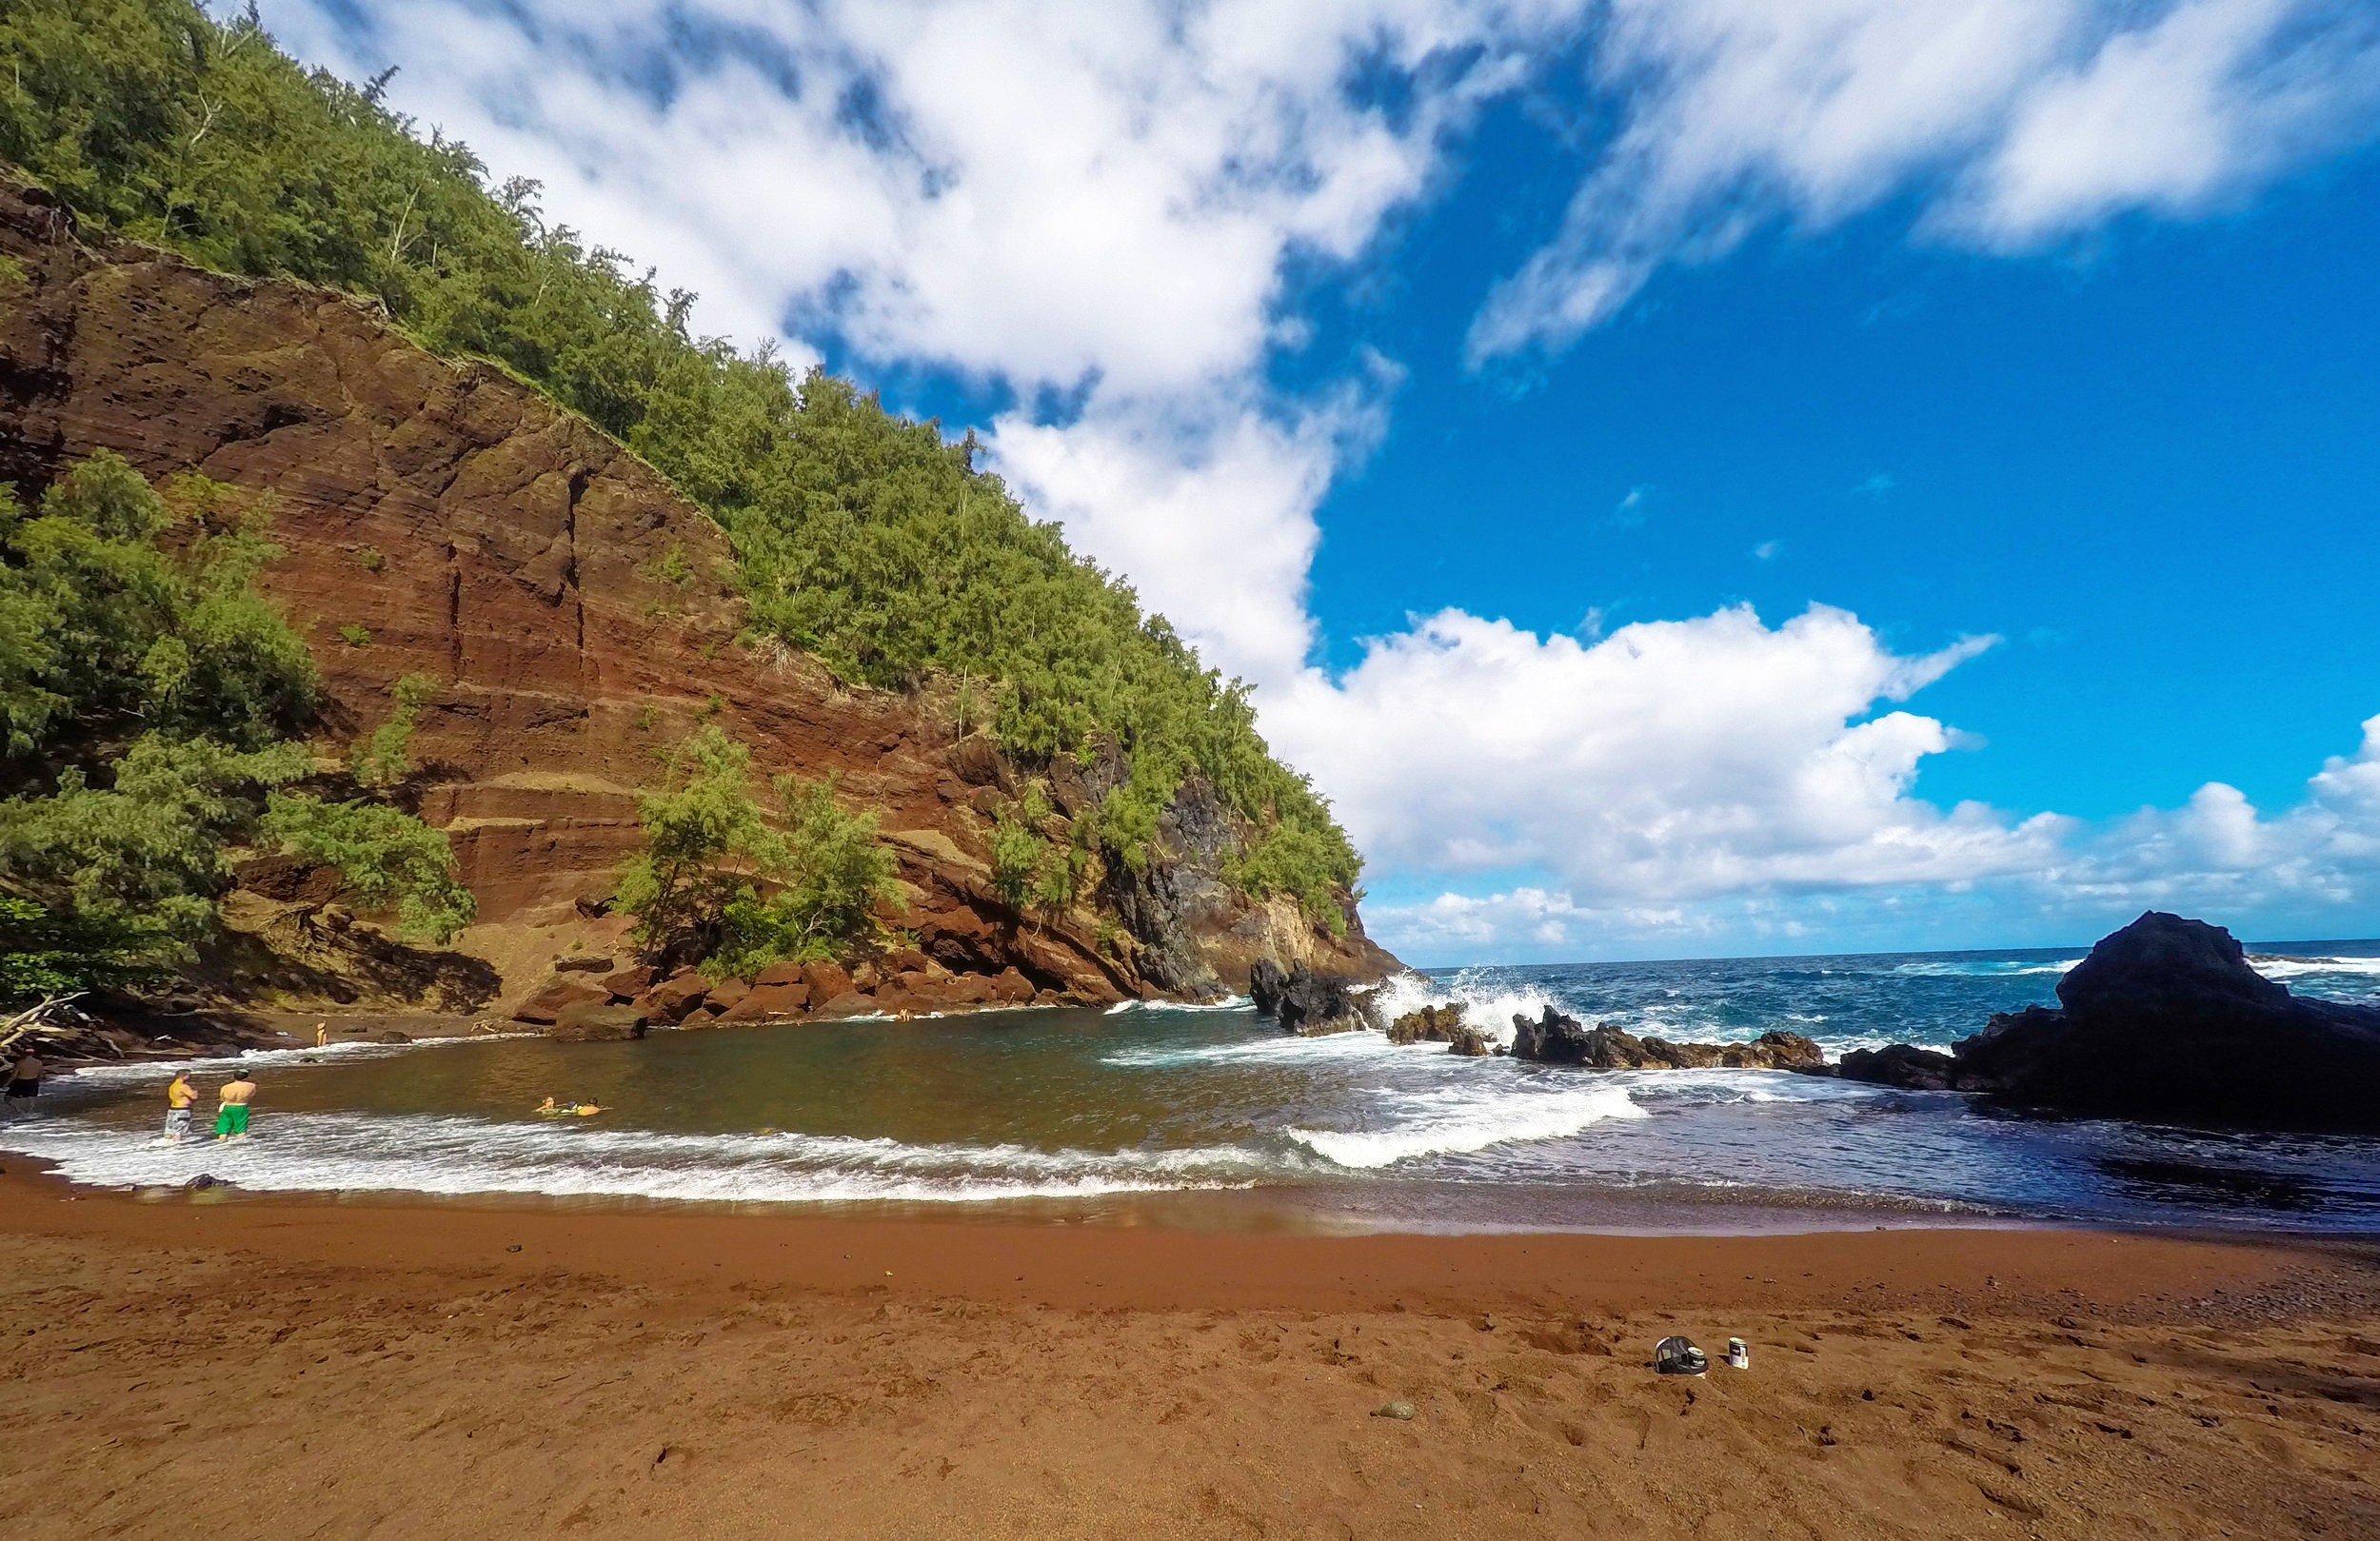 Road to Hana Stops - Red Sand Beach - Things to do in Maui, Hawaii